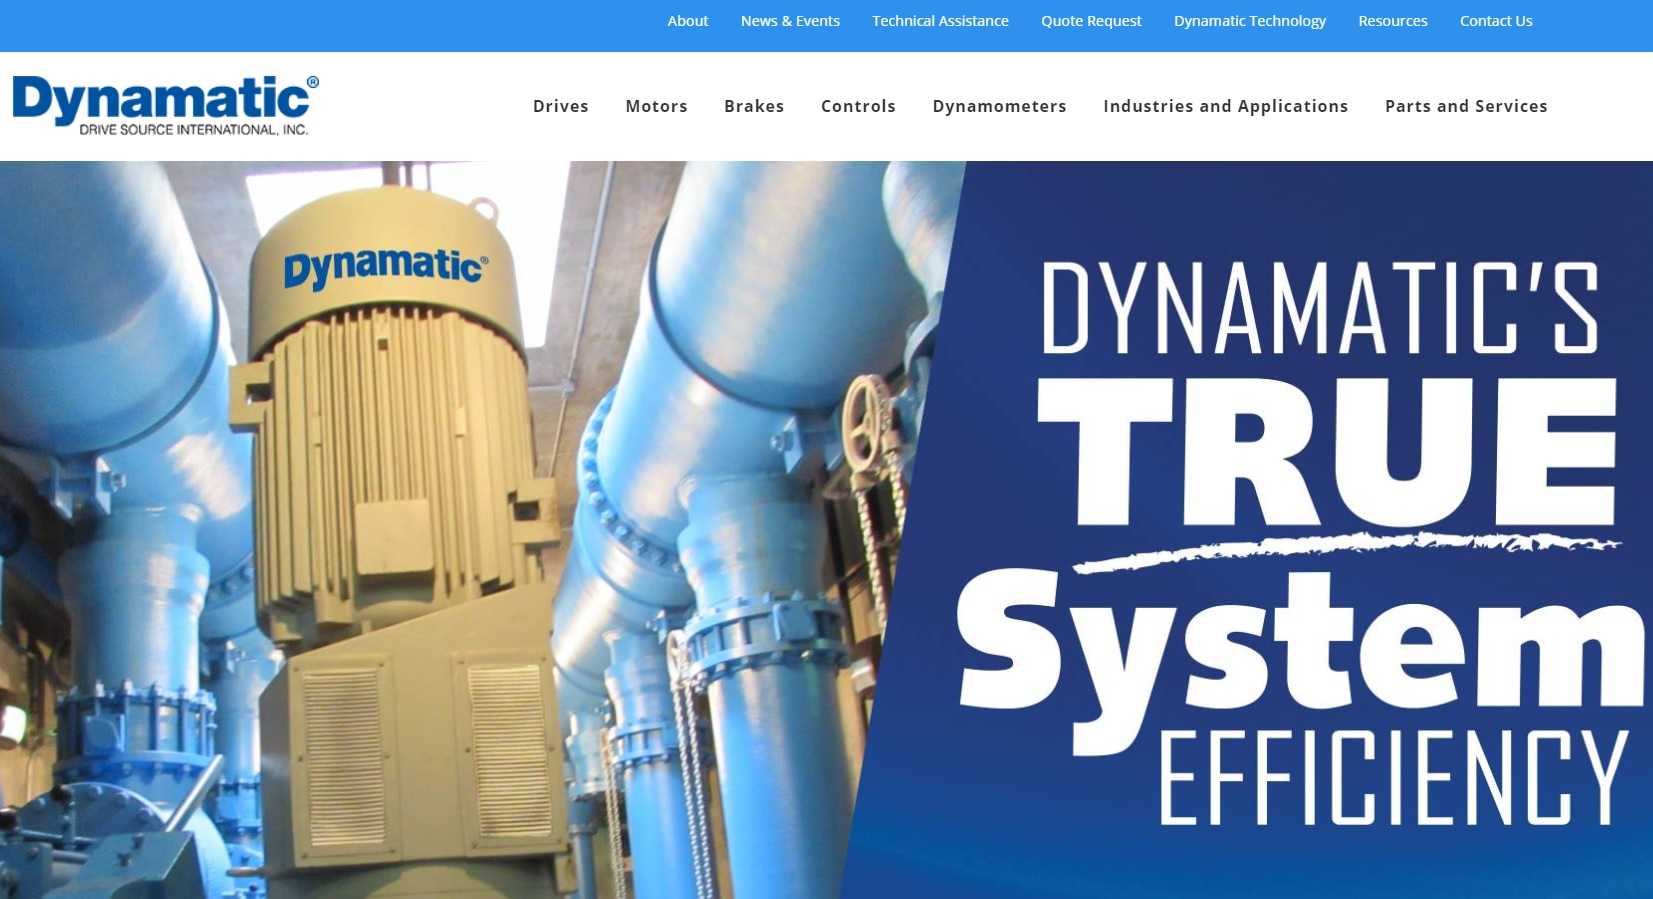 Drive Source International/Dynamatic